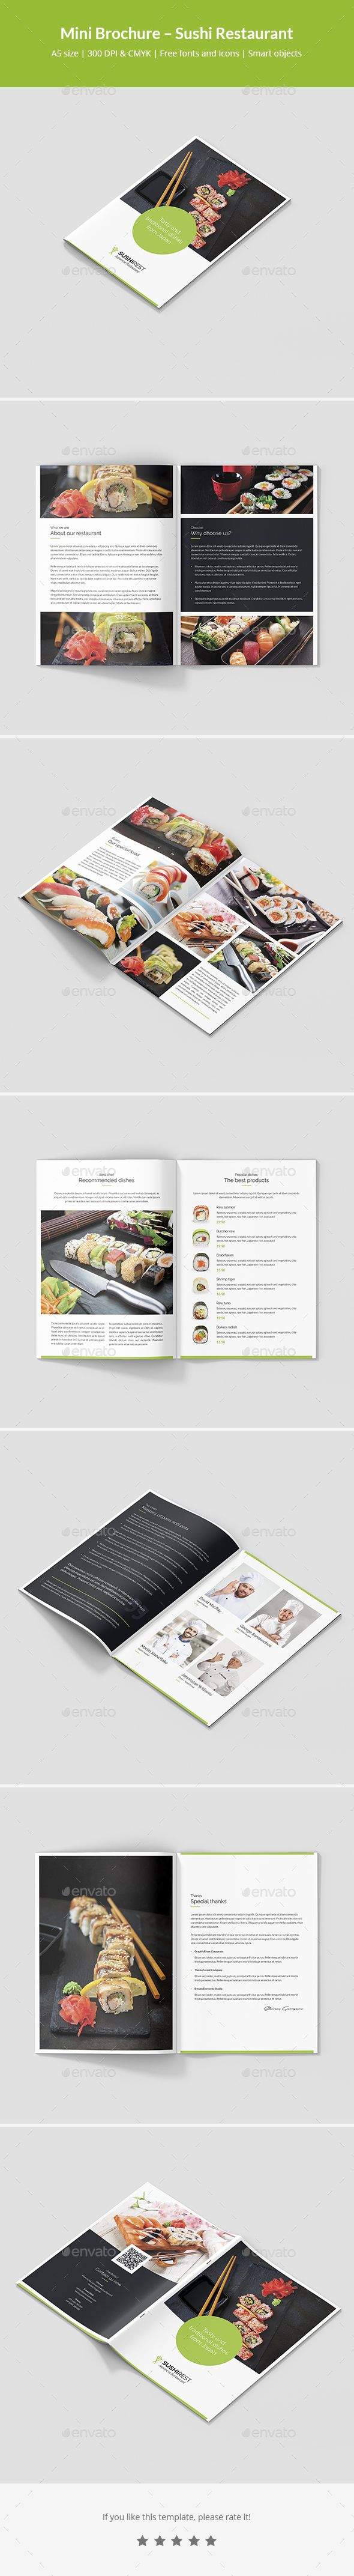 Sushi Restaurant A5 Mini Brochure Template Psd 12 Pages Brochure